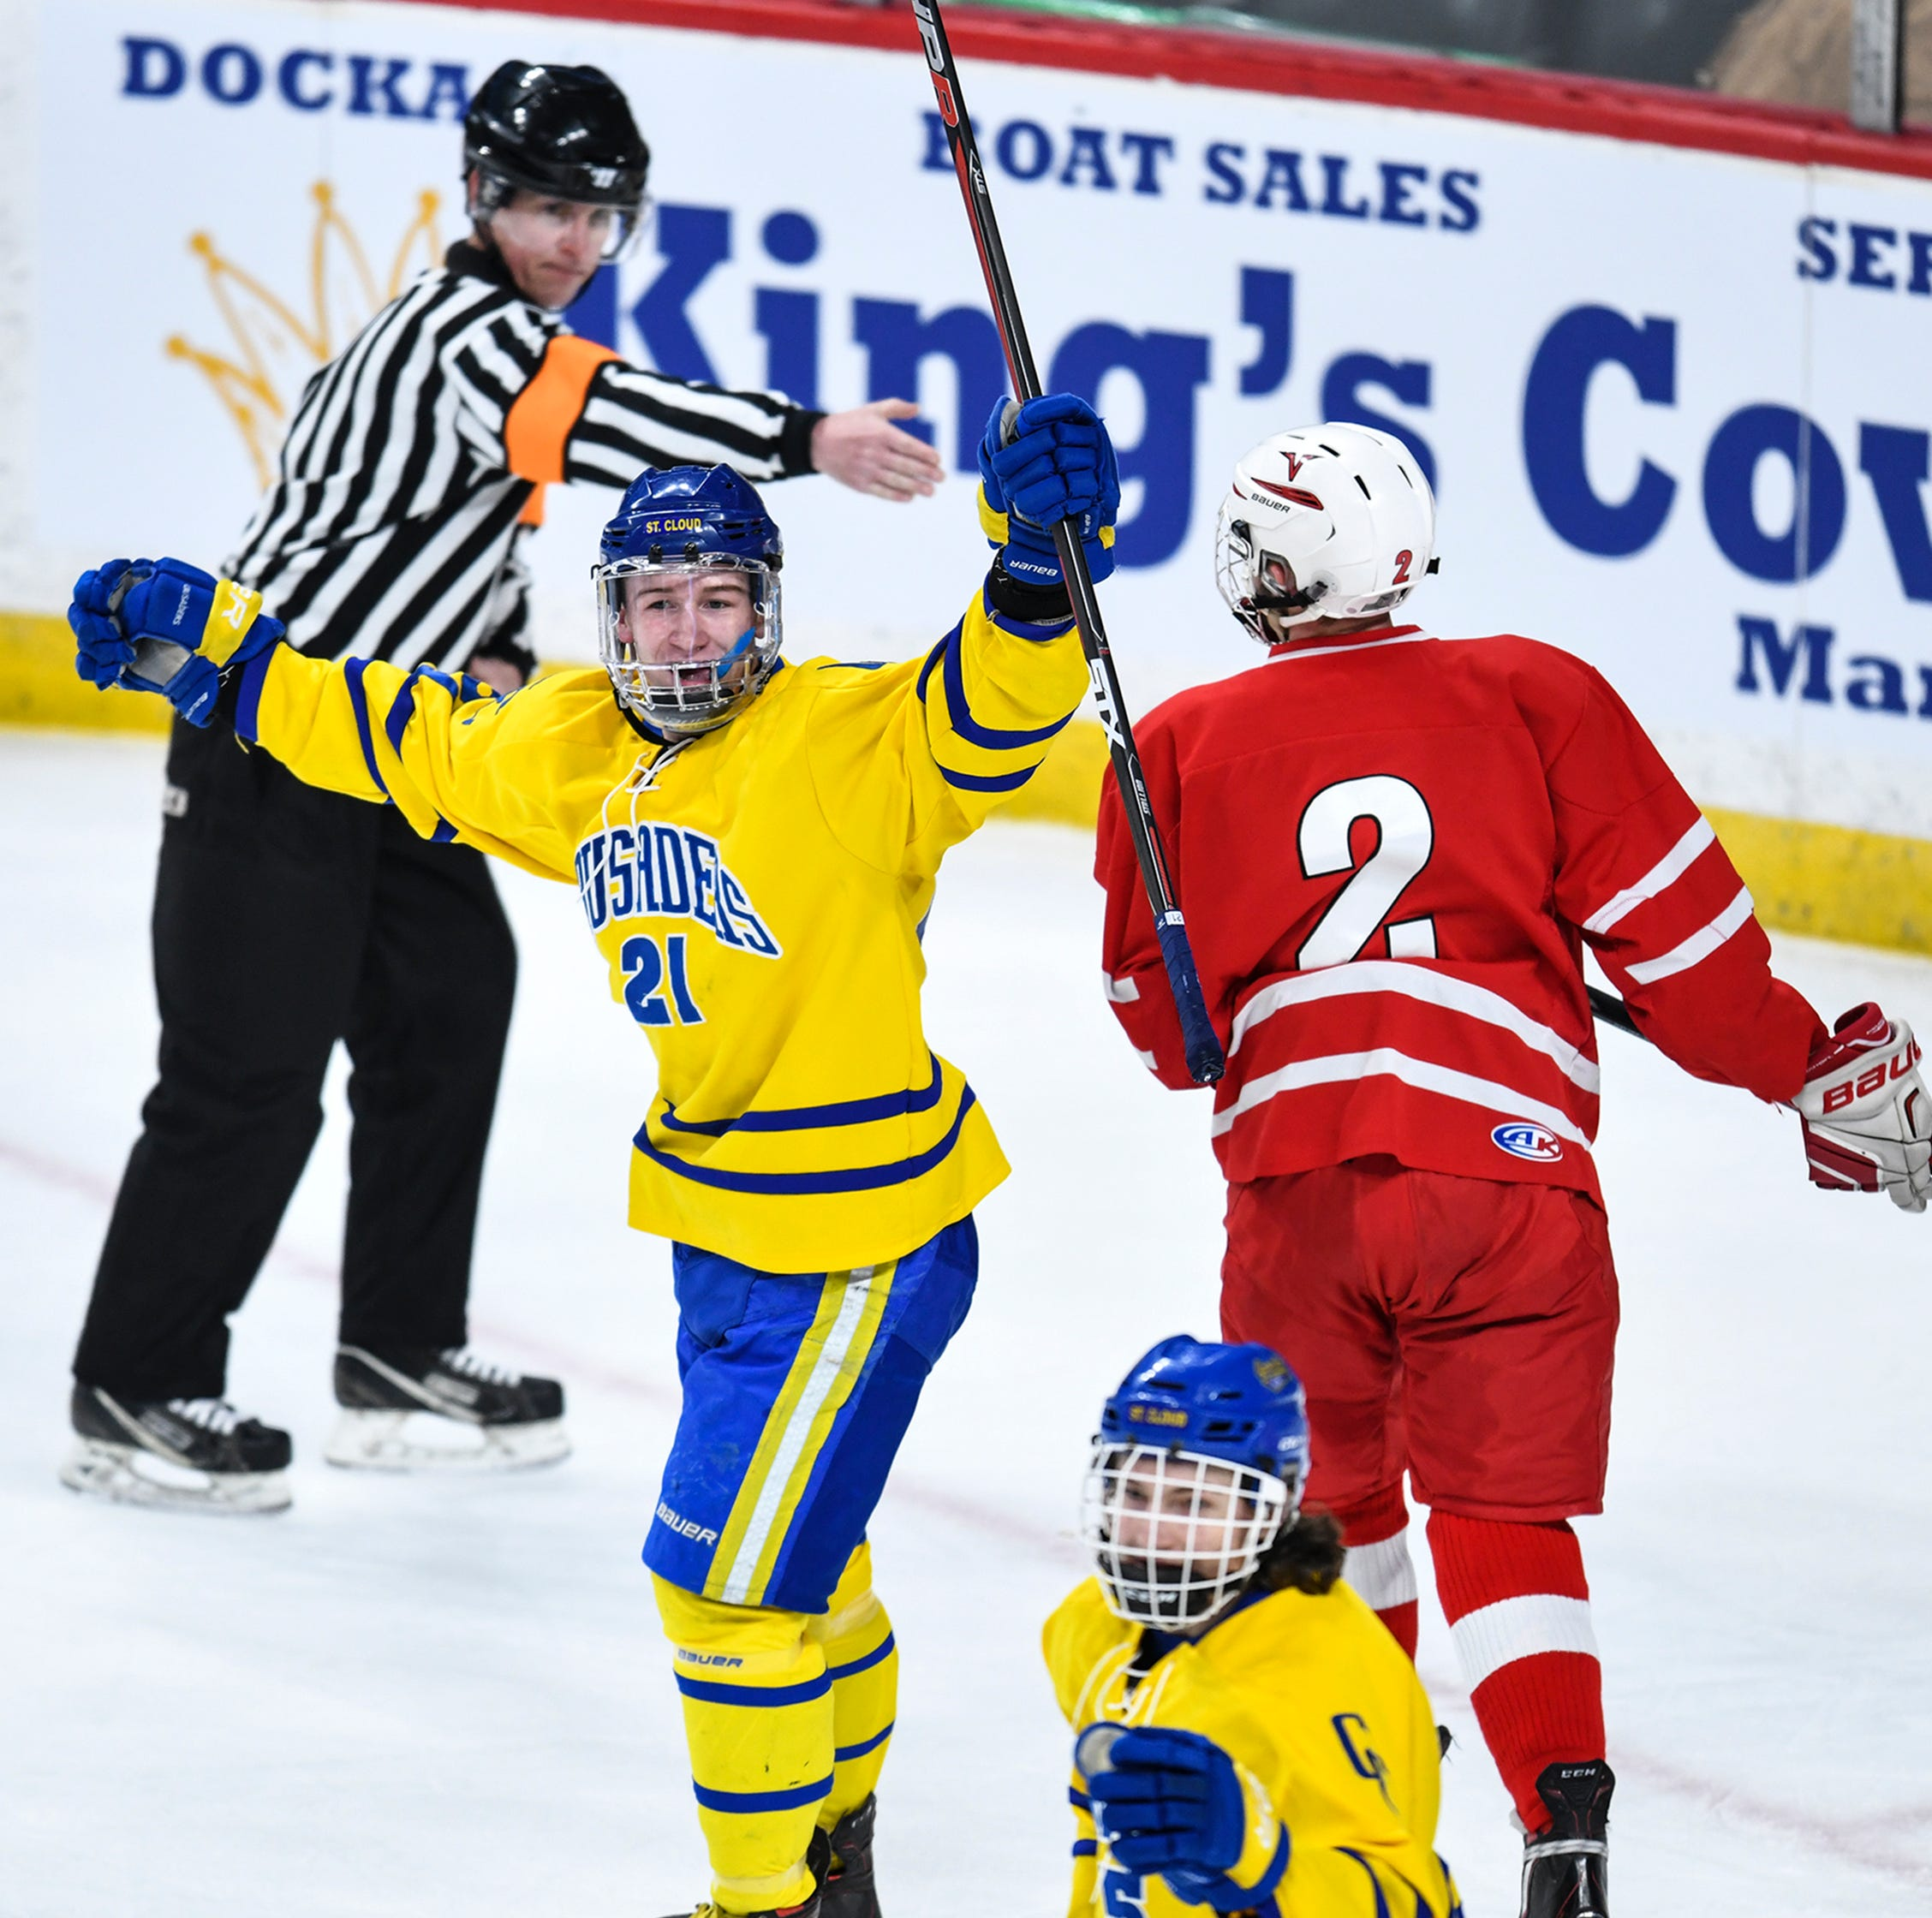 Cathedral senior Schmidt finds a flexible niche on the ice